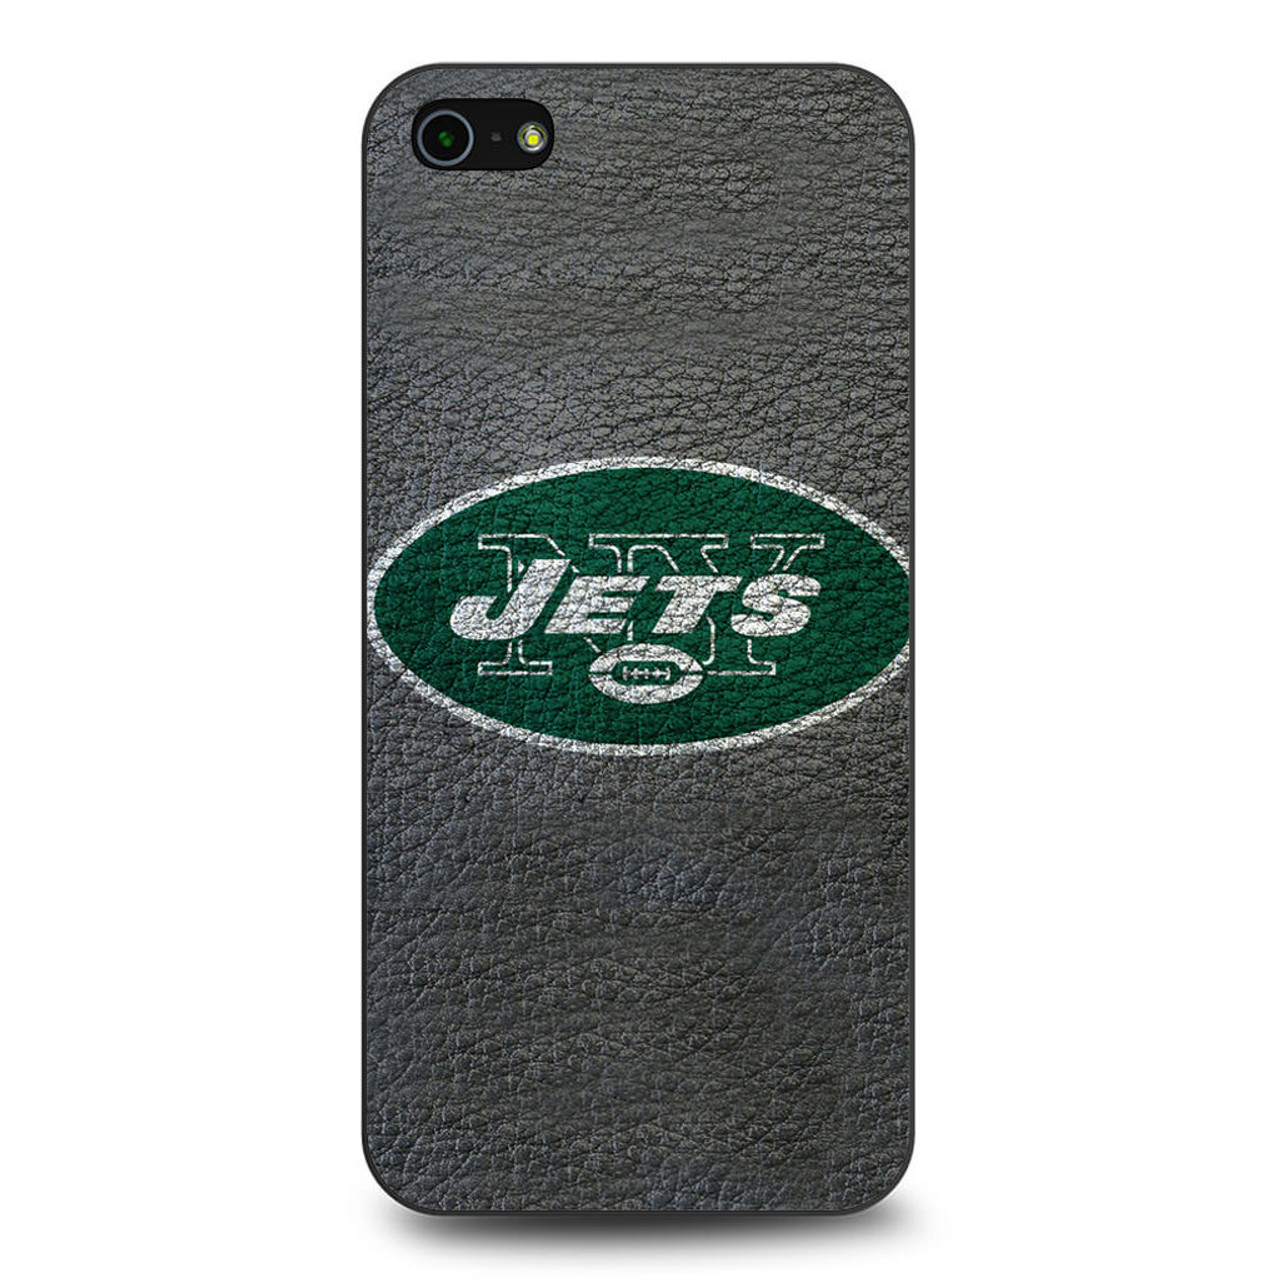 new products a0ea1 87719 New York Jets NFL Football iPhone 5/5S/SE Case